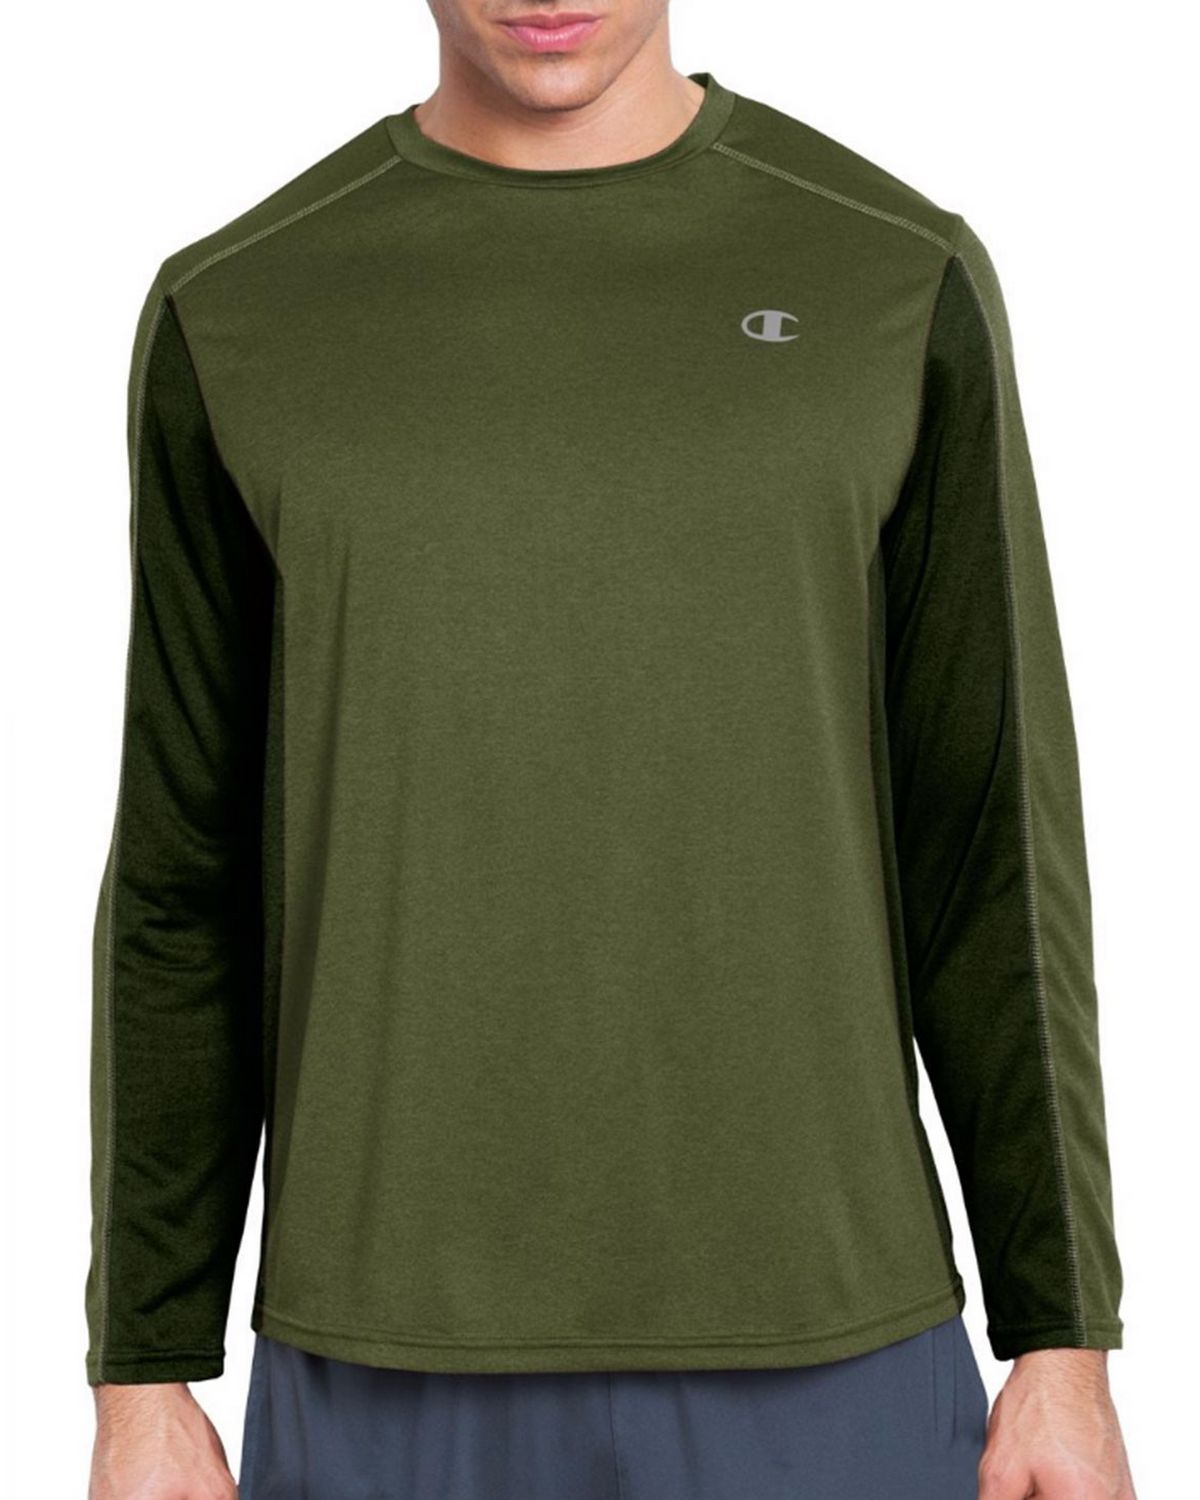 Champion T6607 Vapor PowerTrain Long Sleeve Colorblock Mens Tee - Service Green/Bottle Green - S T6607